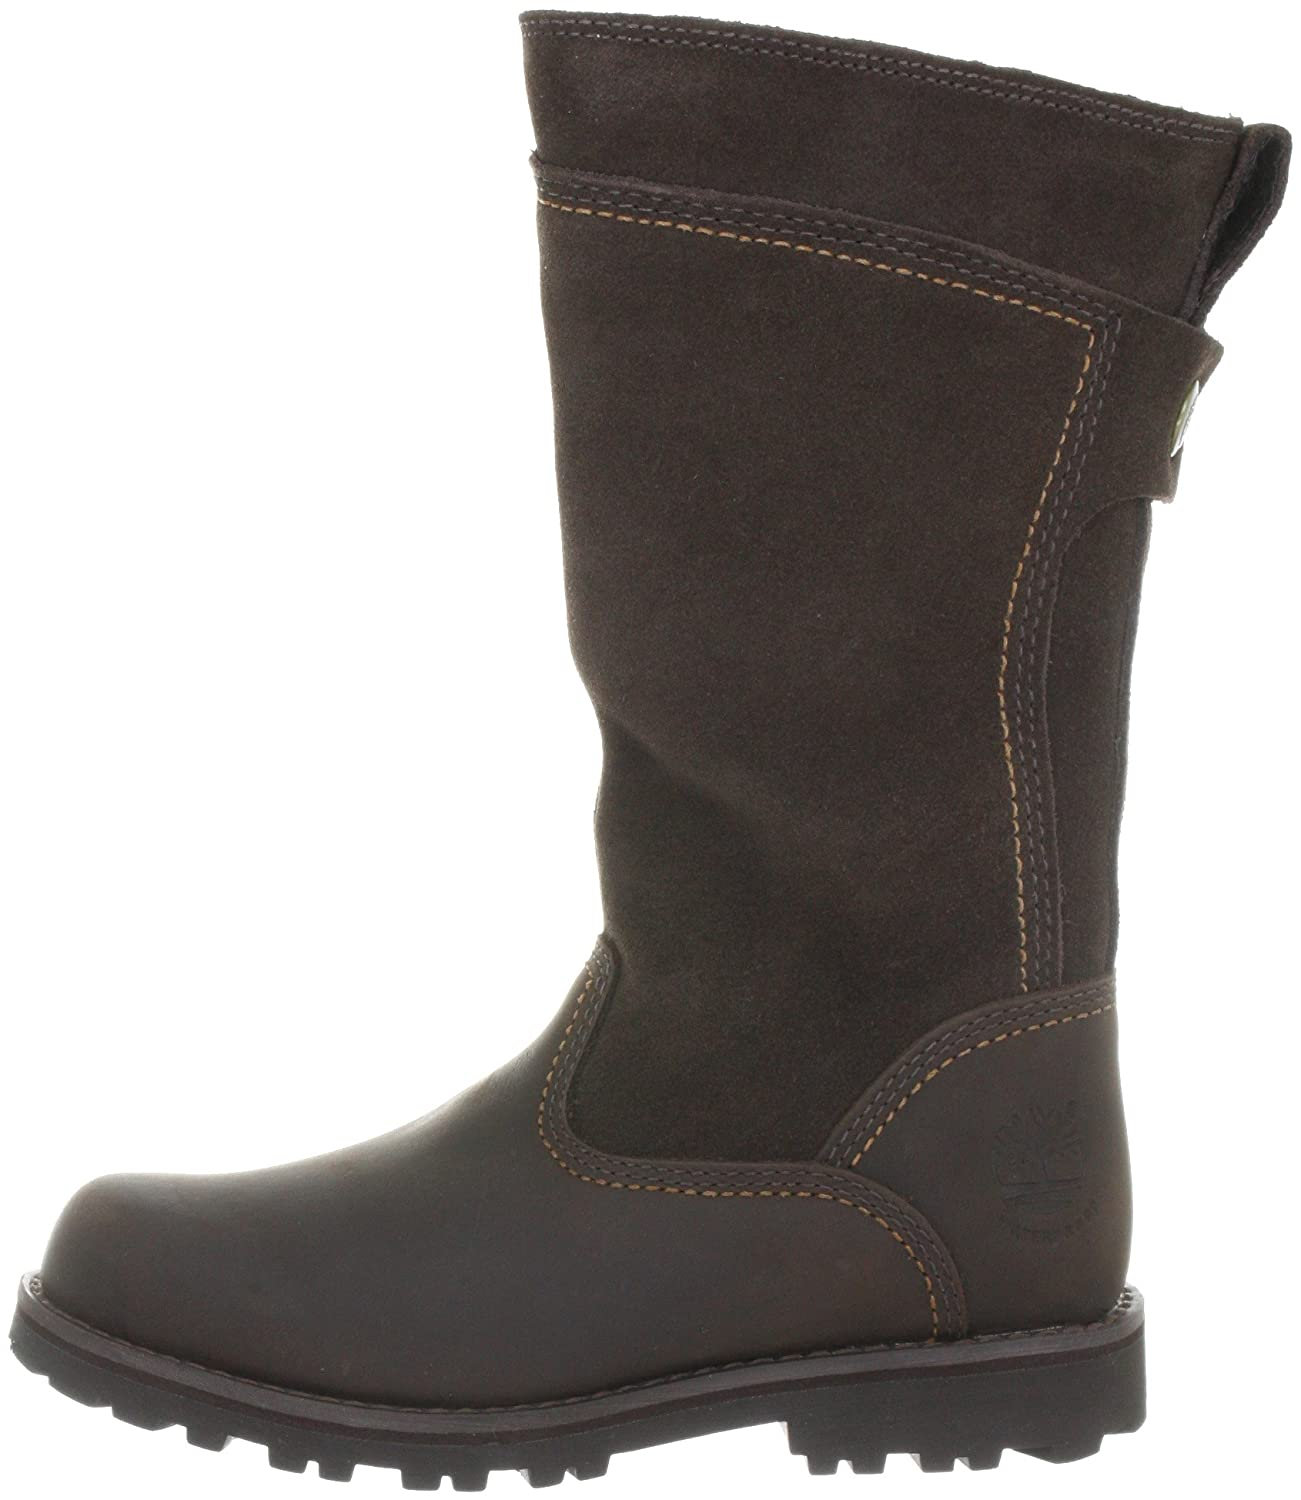 a773895d3df4 Timberland Earthkeepers Asphalt Trail Forestdale Waterproof Tall Boot ( Toddler Little Kid Big Kid)